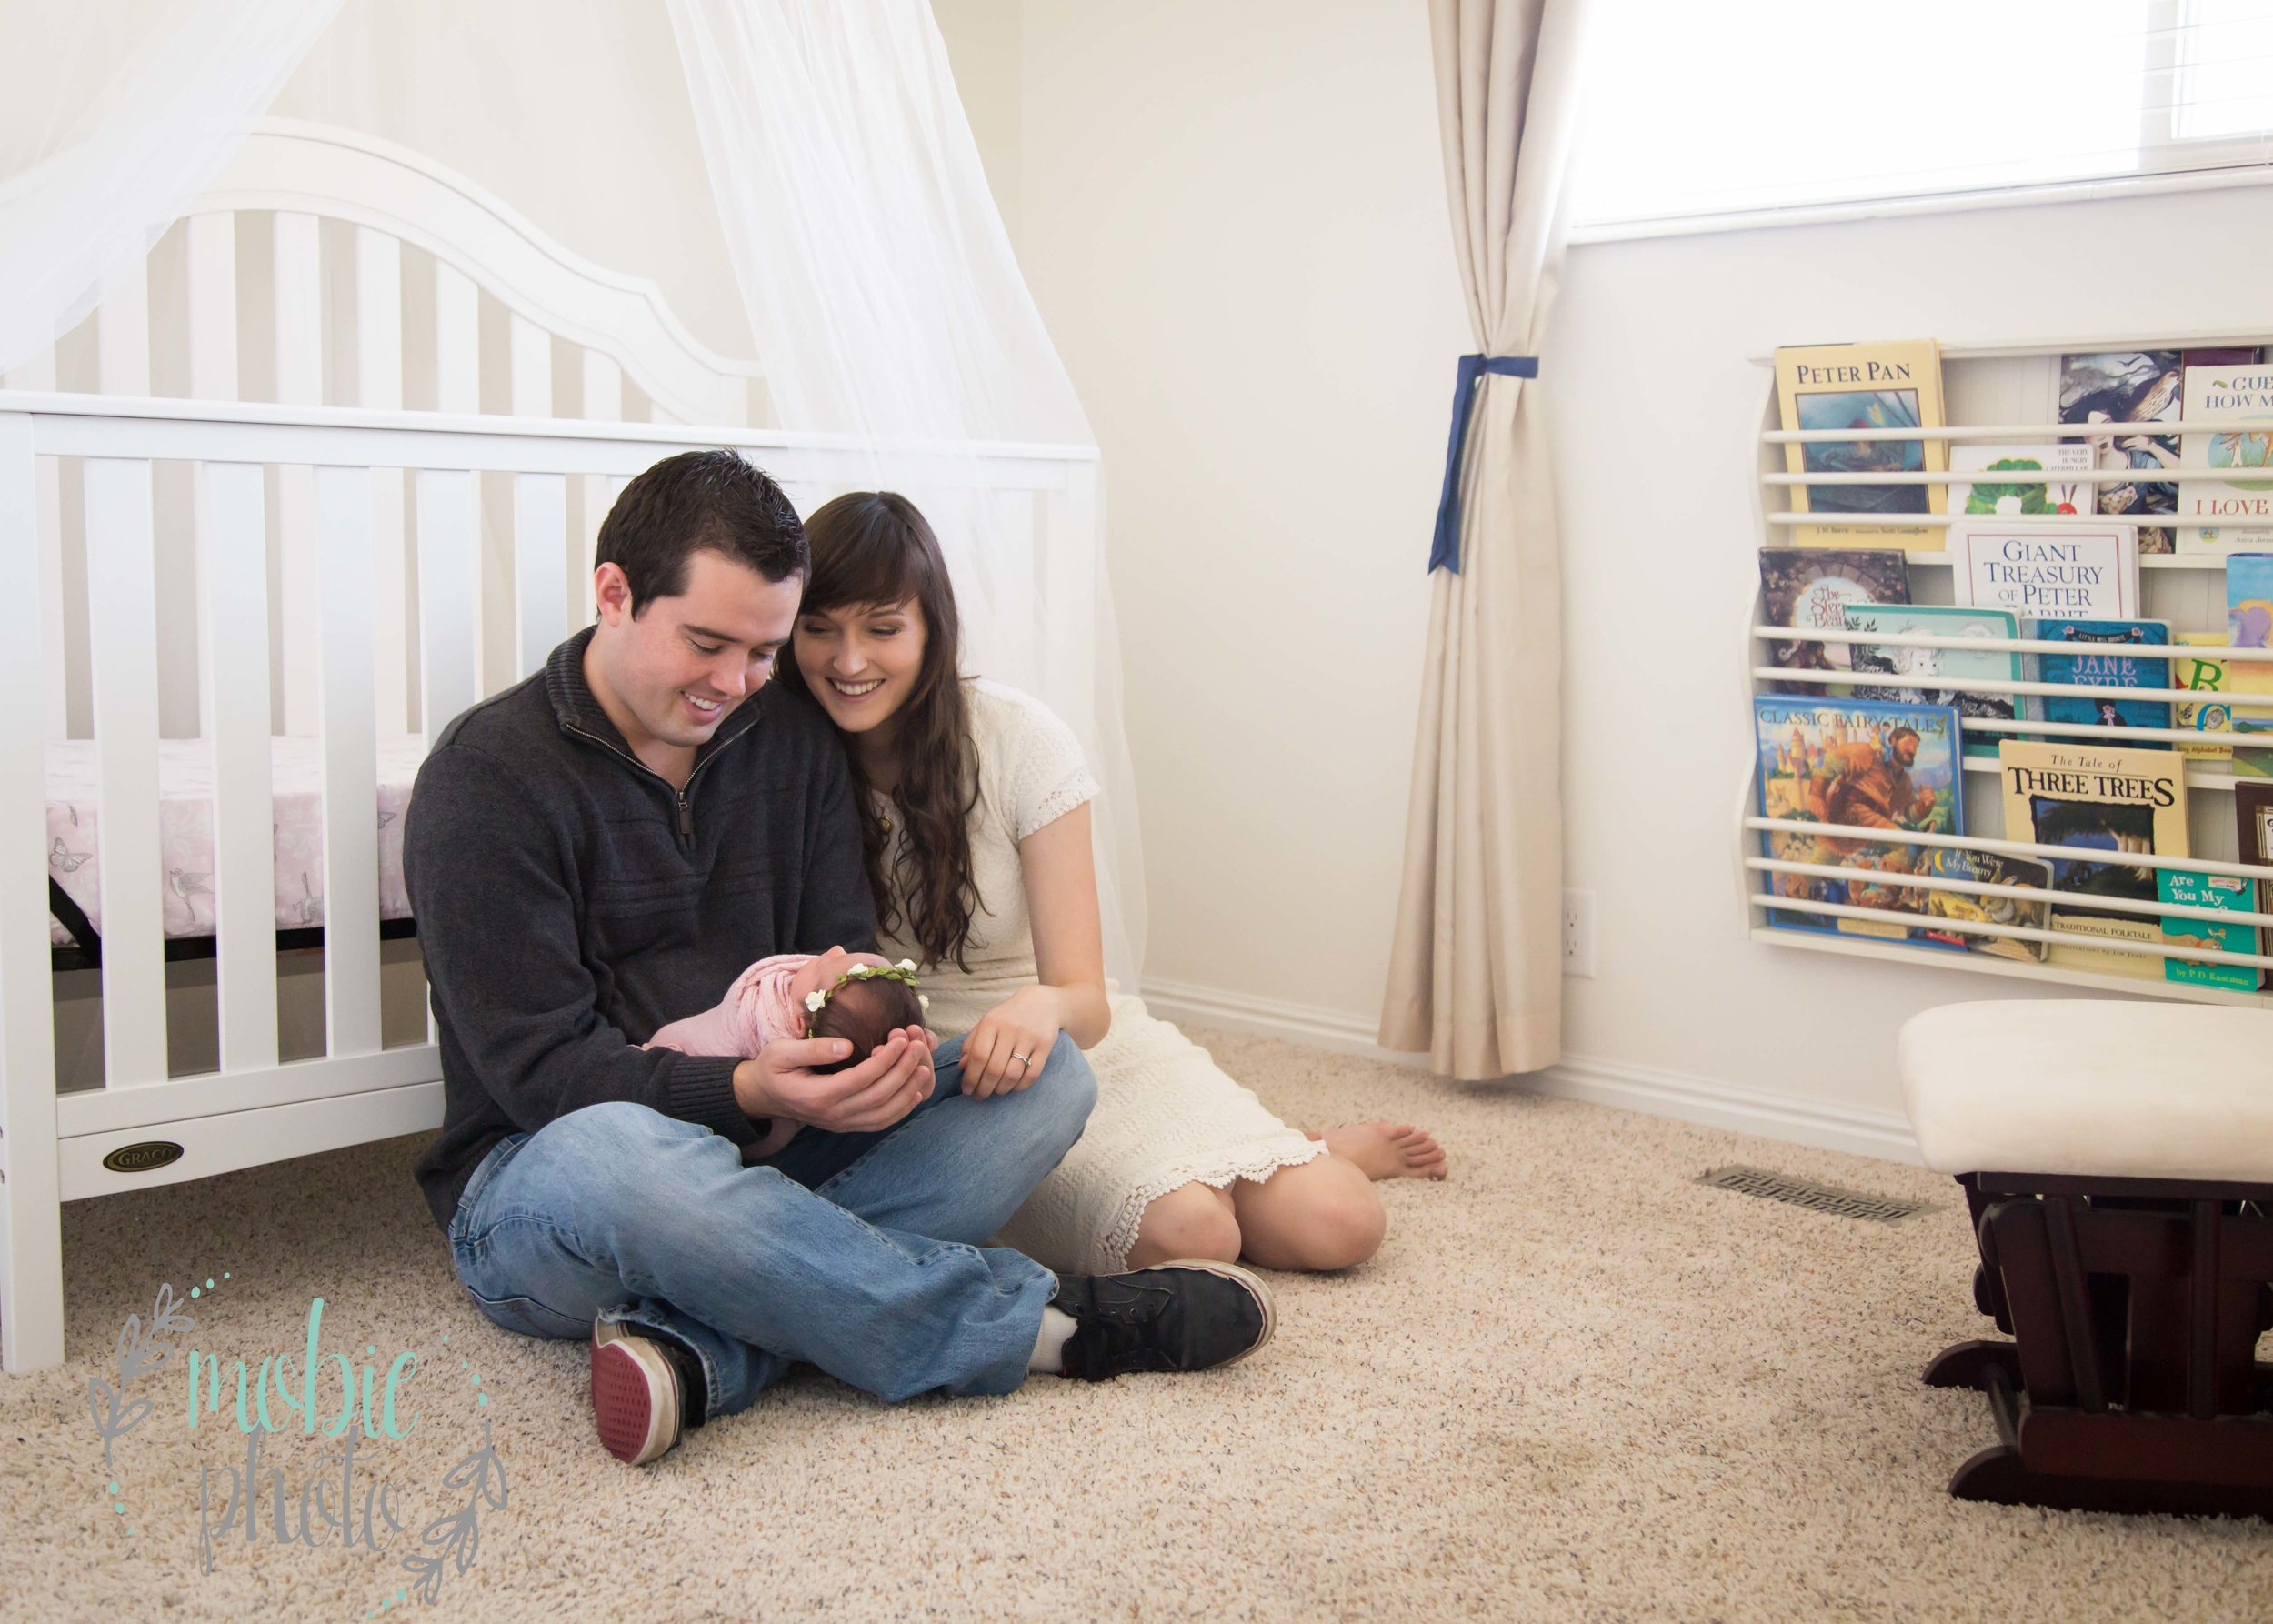 Newborn Photography Ideas - Parents holding Newborn Girl in Nursery